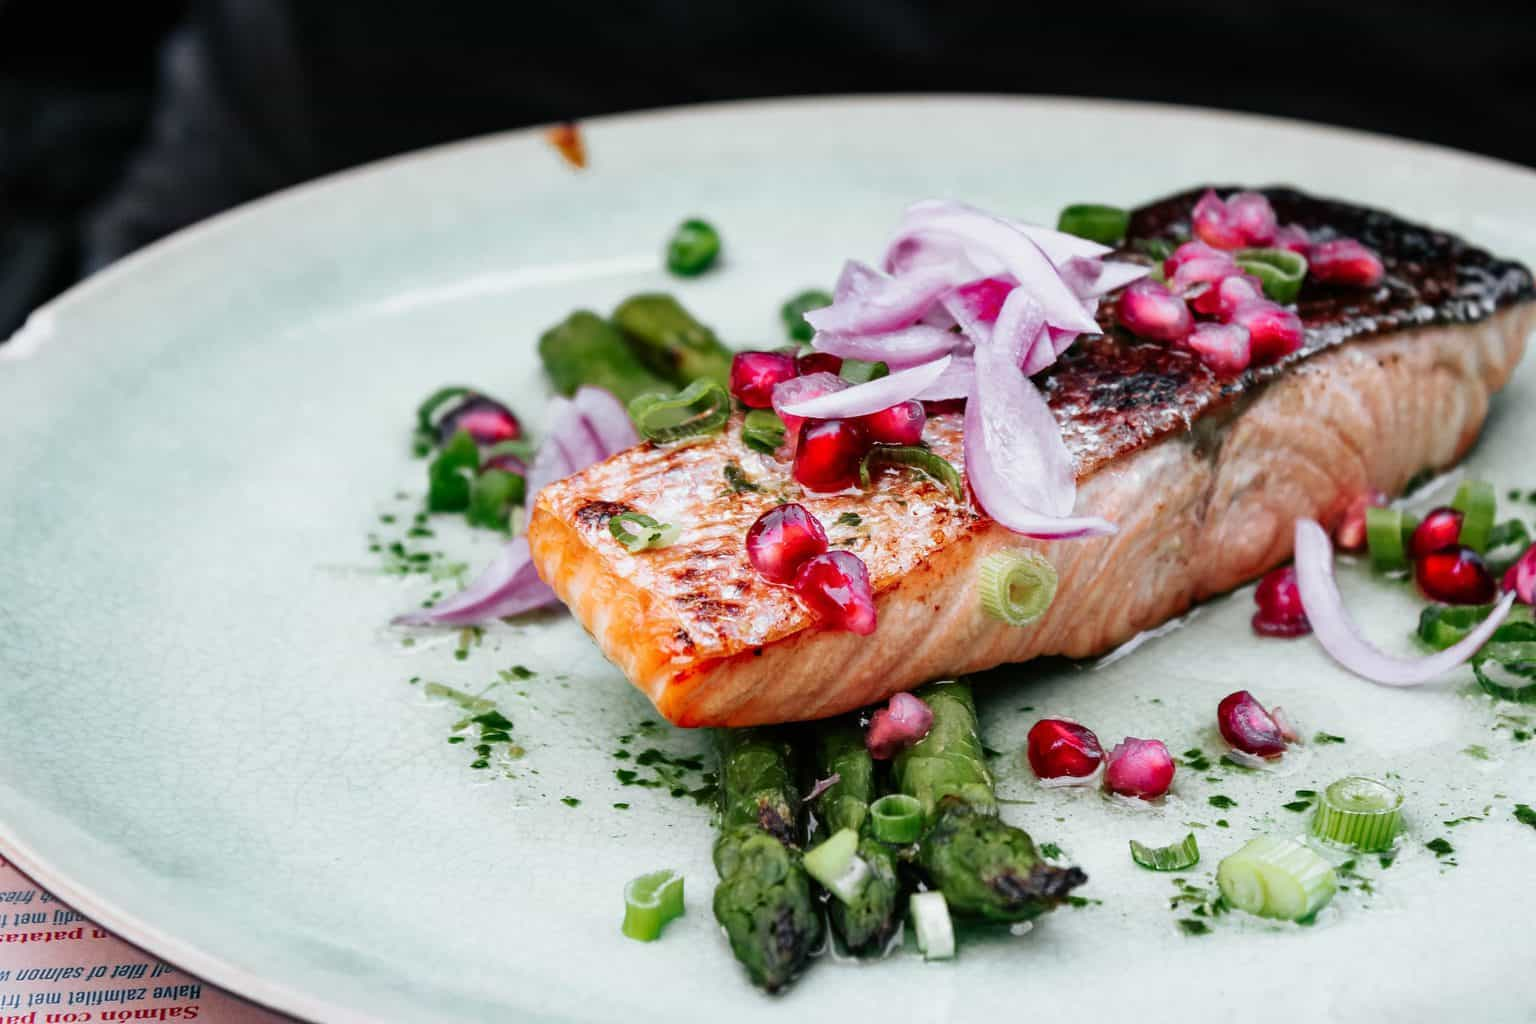 A cooked salmon with onions and asparagus